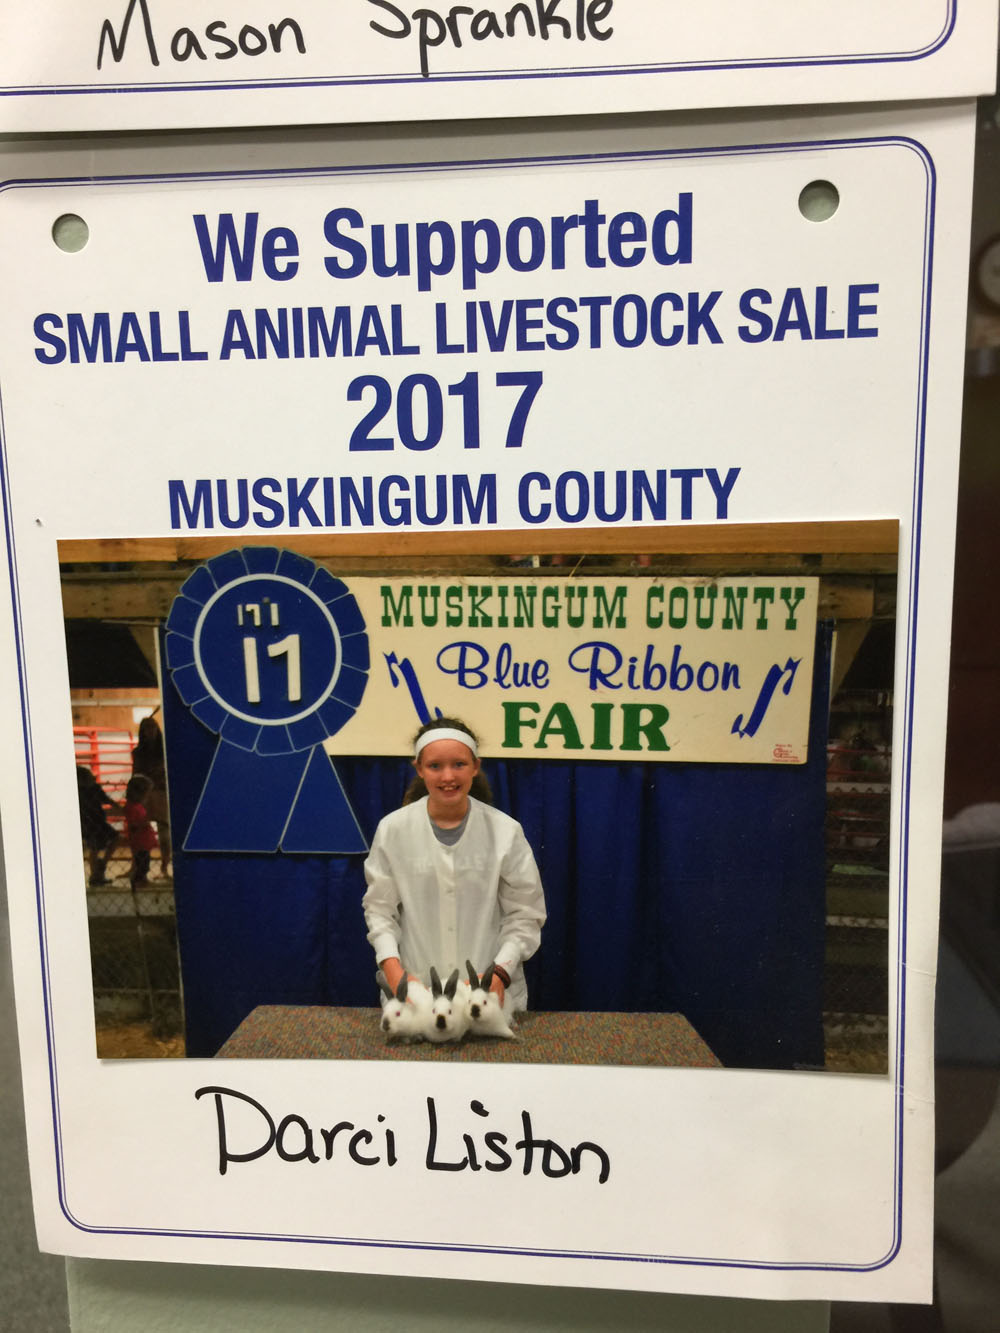 2017 Zemba Bros Community Support Muskingum County Fair Live Stock Auction 5